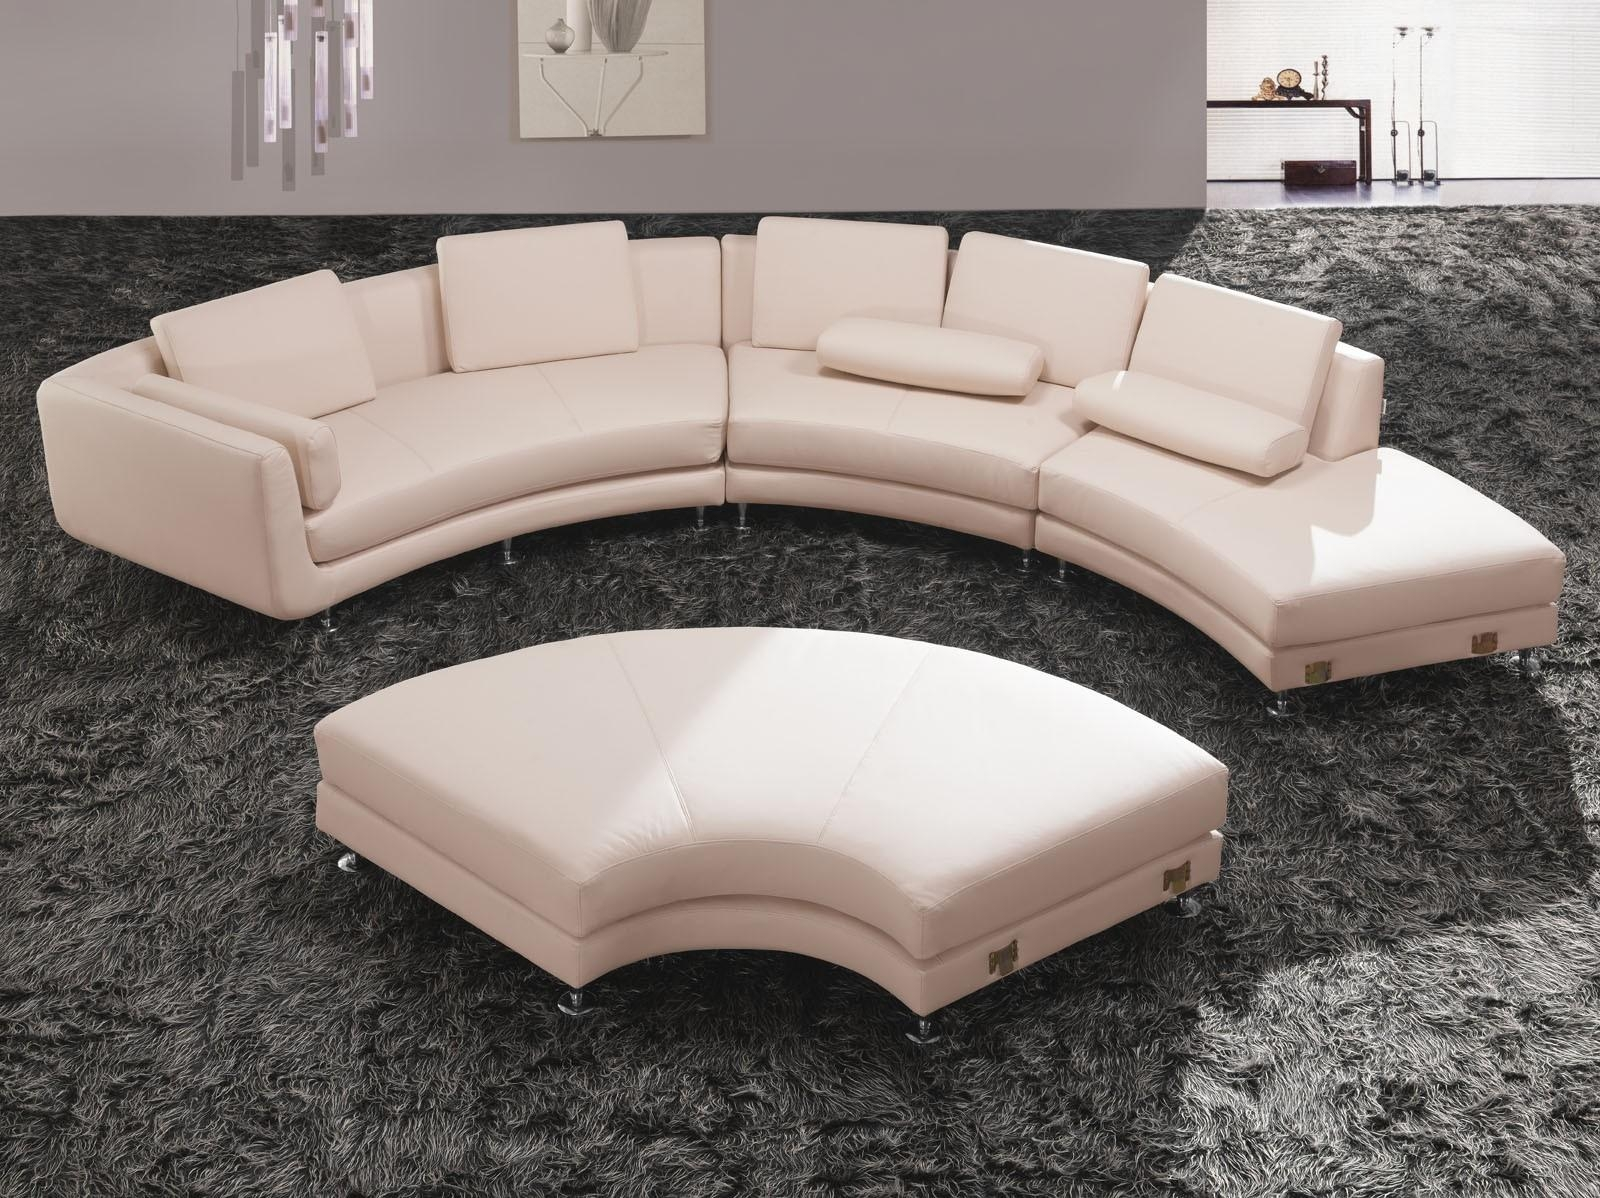 Circular Sectional Sofa Canada | Tehranmix Decoration Inside Round Sectional Sofa Bed (Image 4 of 20)